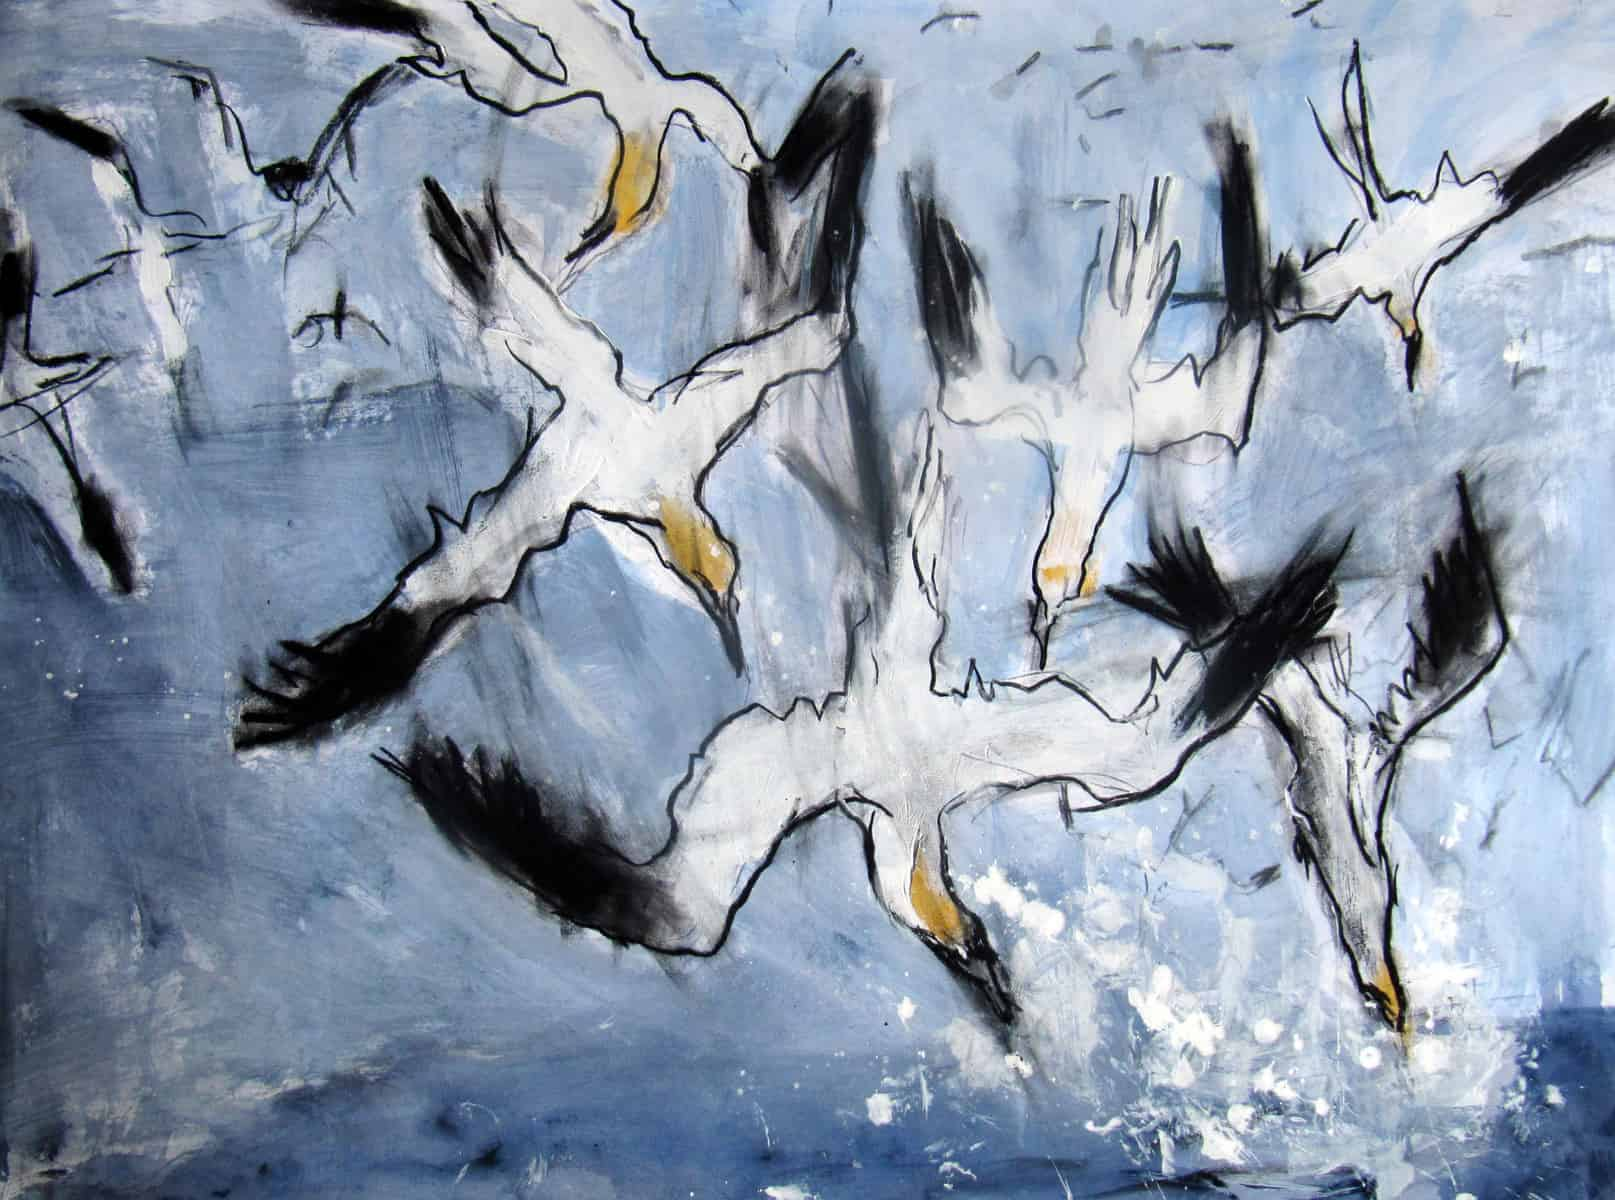 Gannets in Kells Bay, Mixed Media on Fabriano Paper, 70 x 100 cm